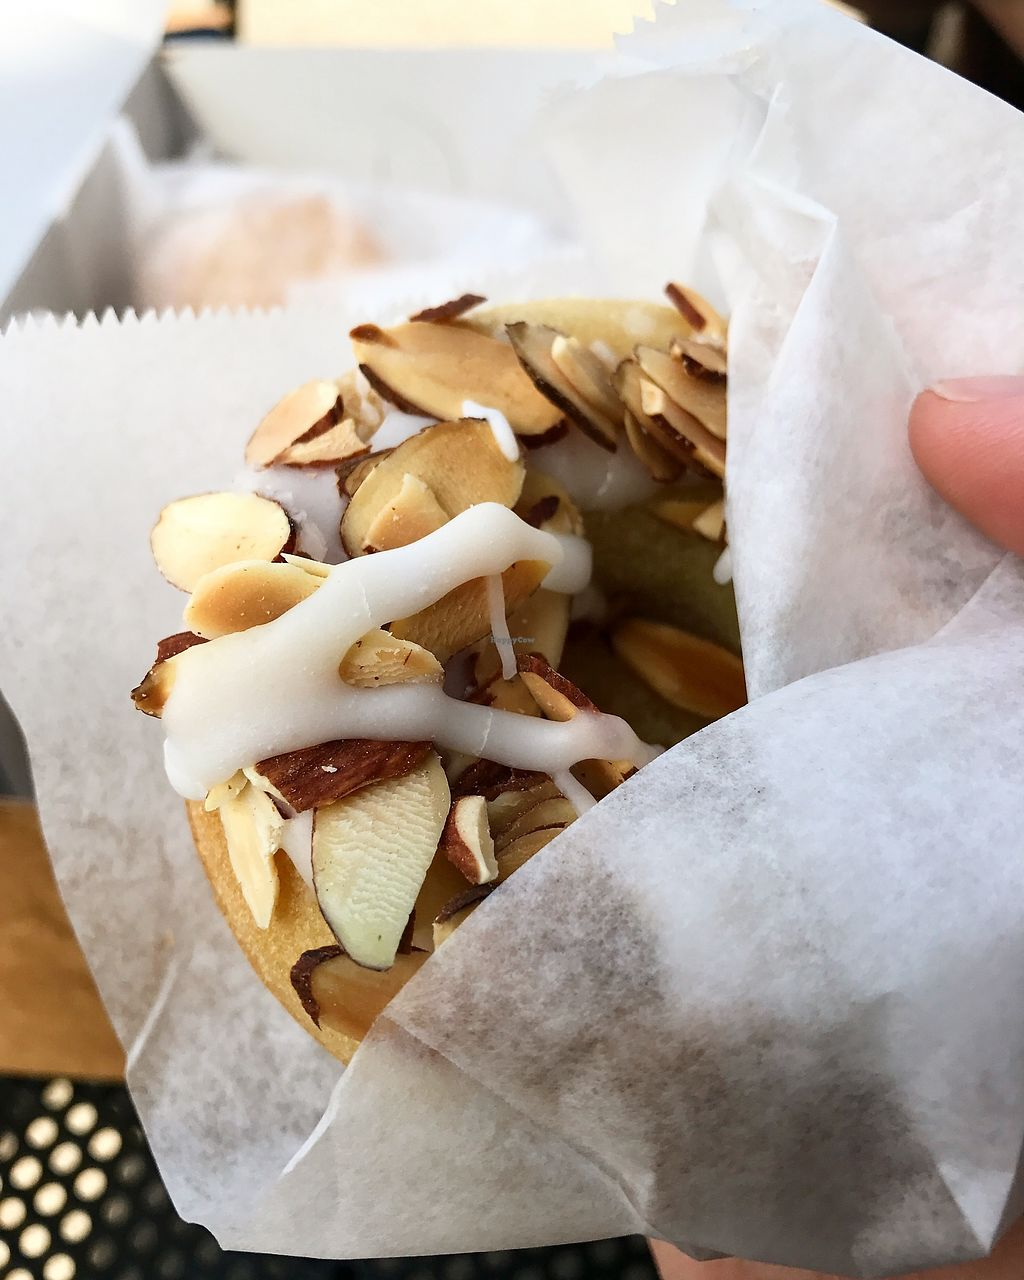 """Photo of Revolution Doughnuts  by <a href=""""/members/profile/TofuTrey"""">TofuTrey</a> <br/>Toasted Almond Vegan Doughnut <br/> March 25, 2018  - <a href='/contact/abuse/image/32680/375599'>Report</a>"""